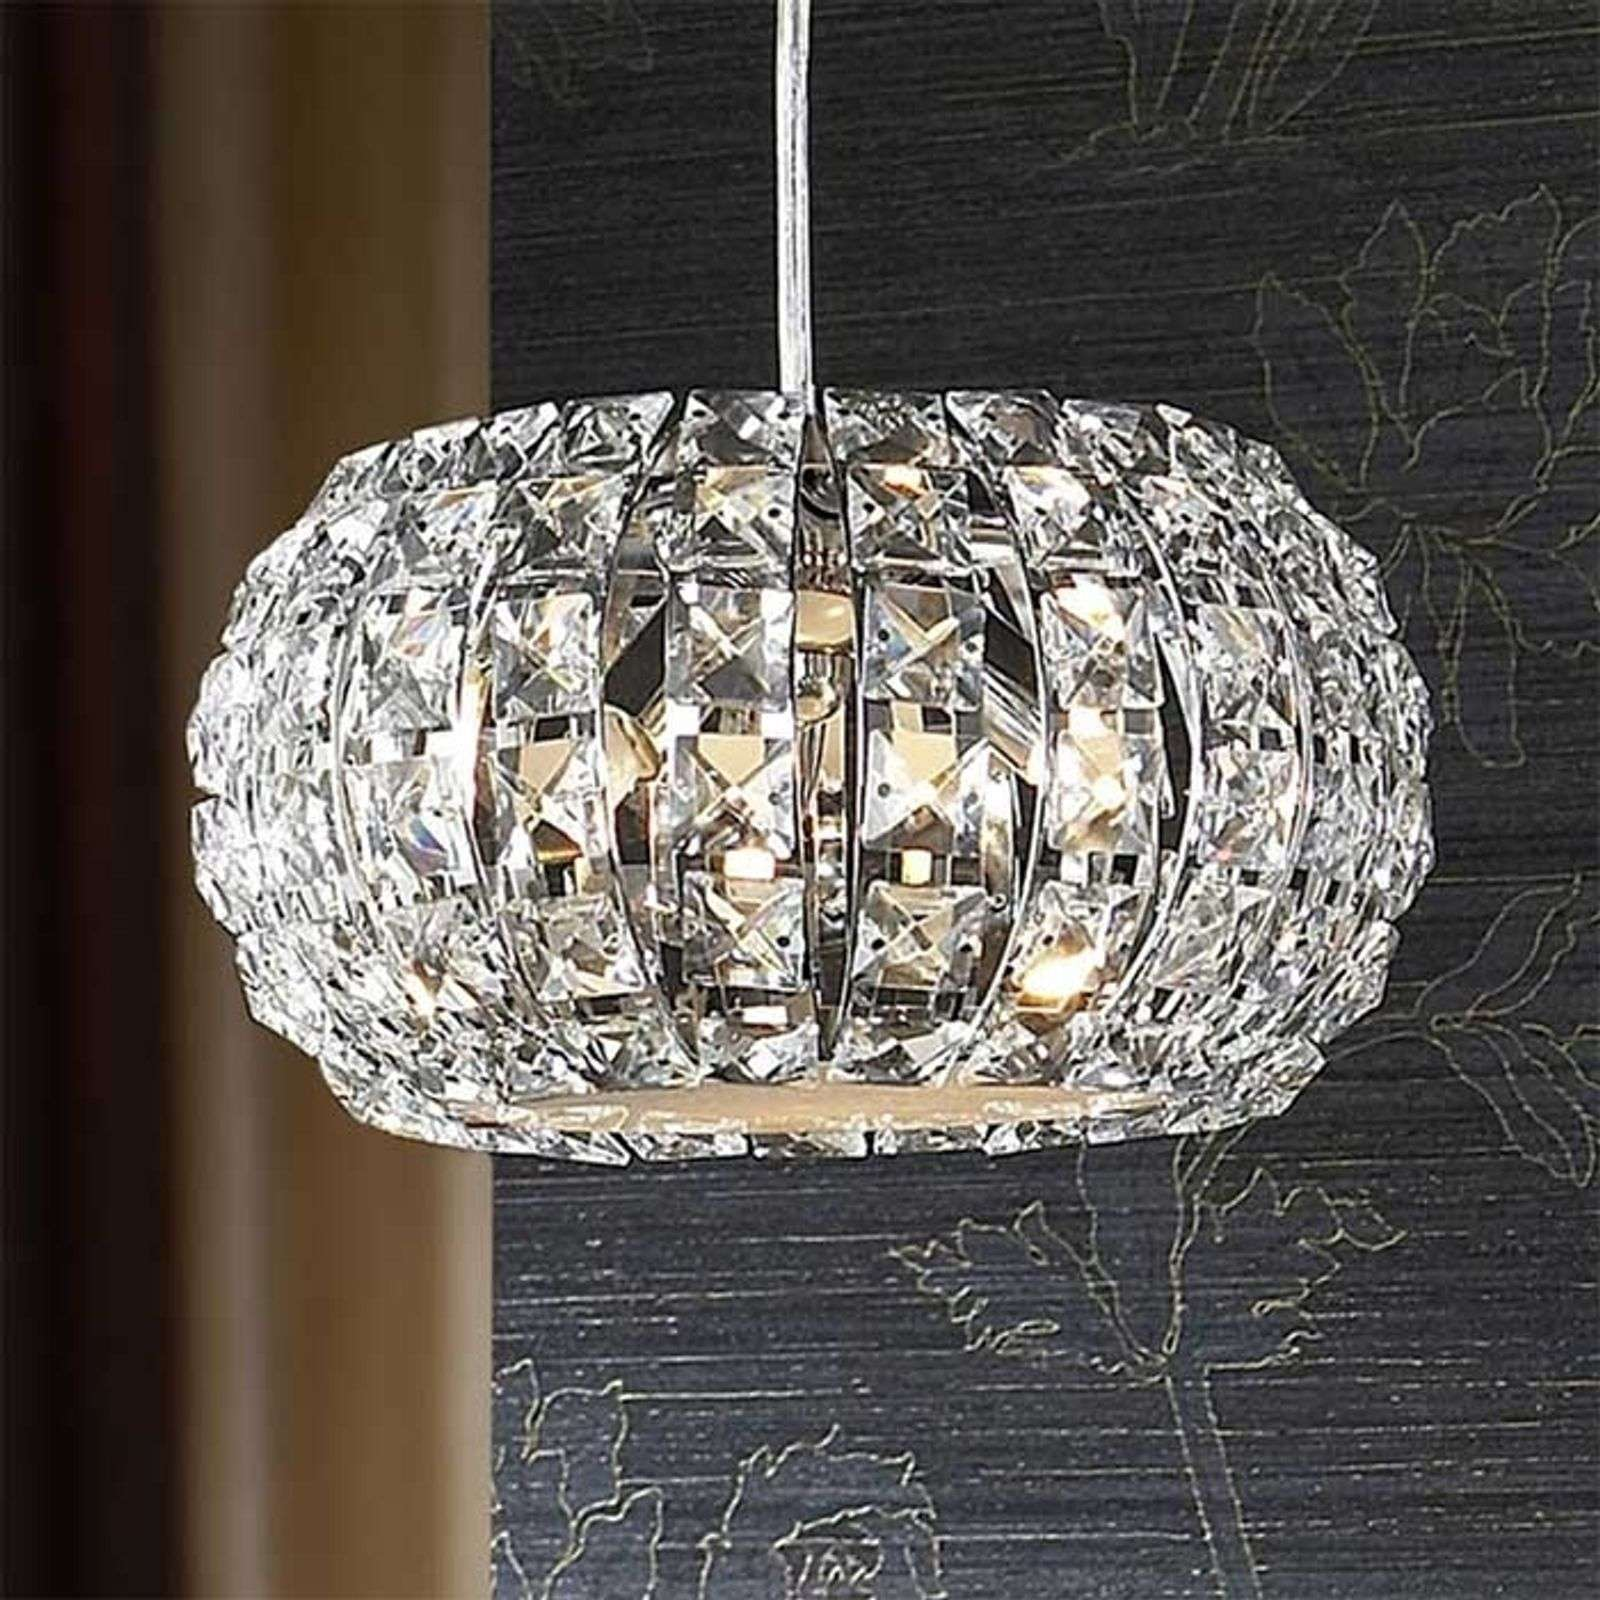 Petite suspension DIAMOND en cristal ronde